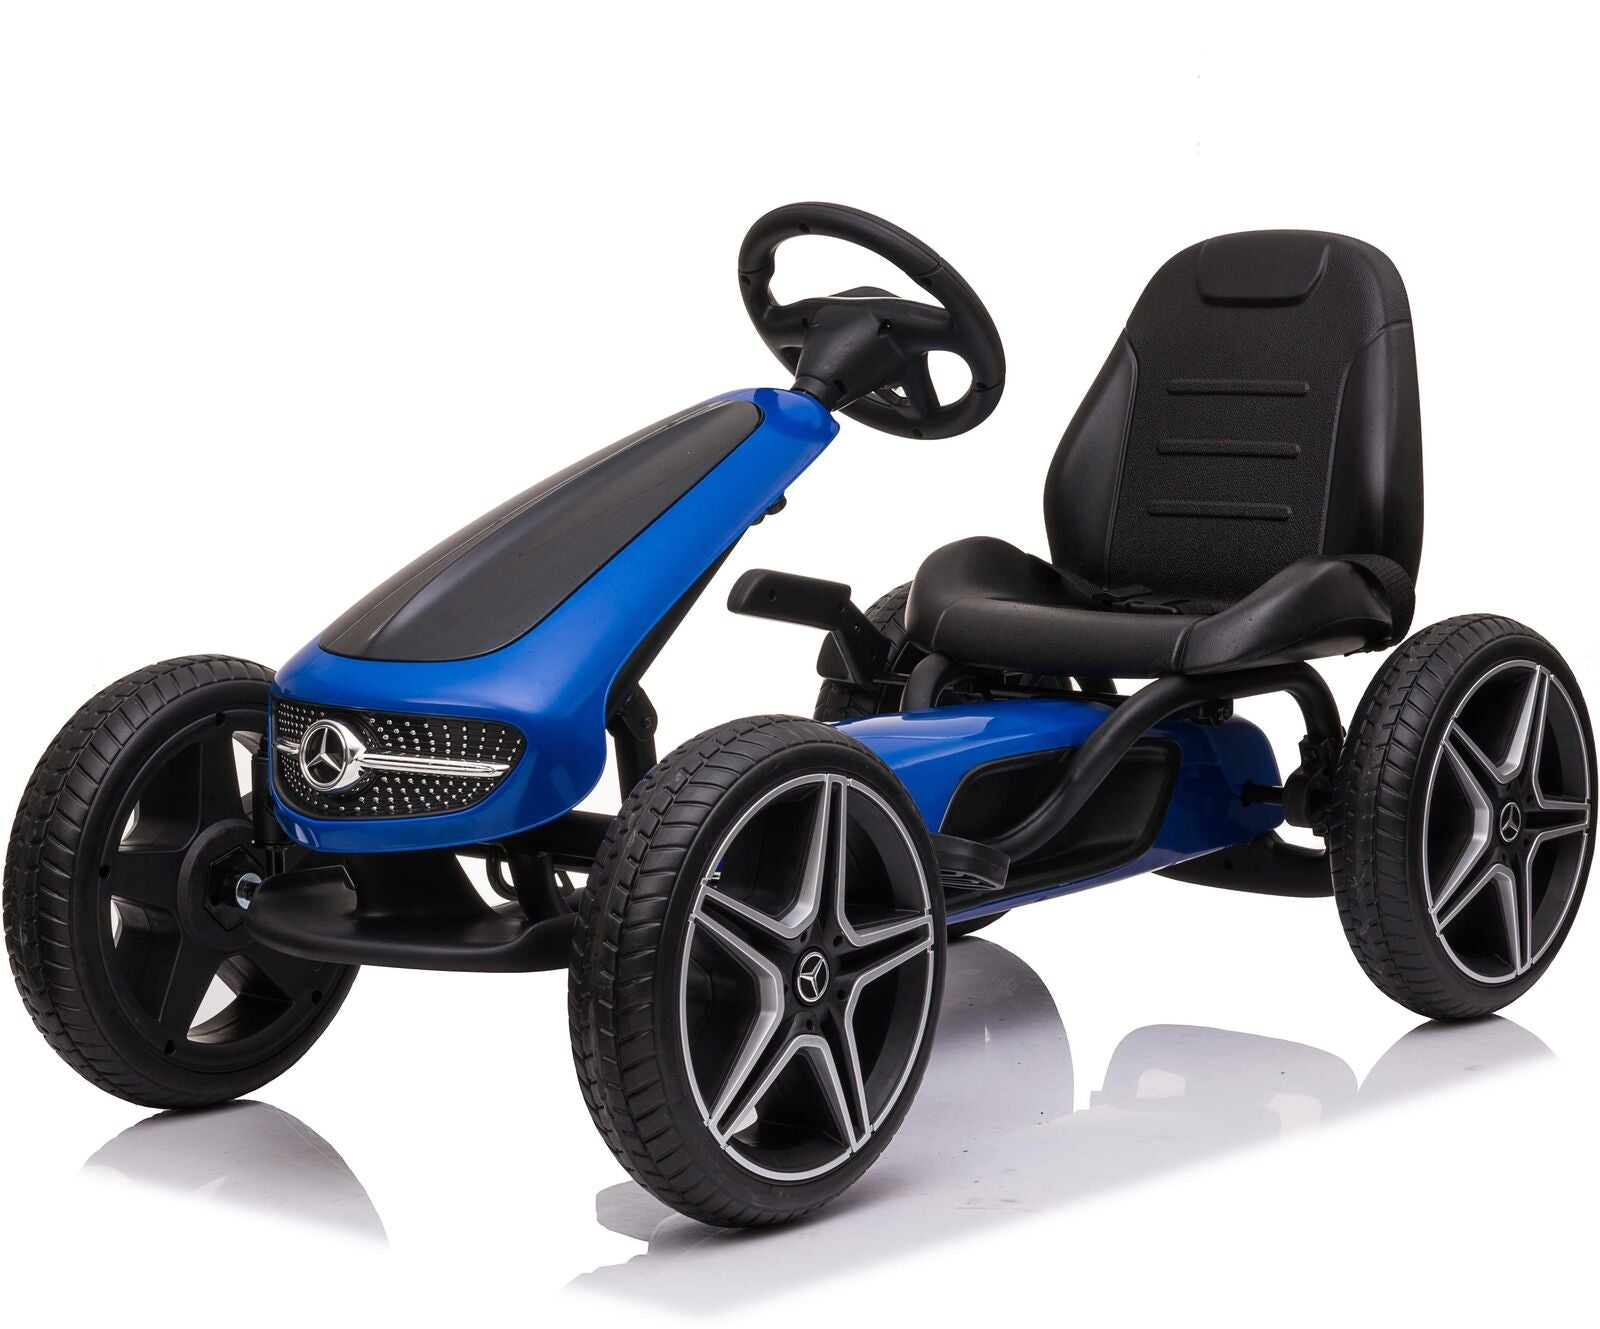 Licensed Mercedes Children's Ride On Pedal Go Kart - Blue